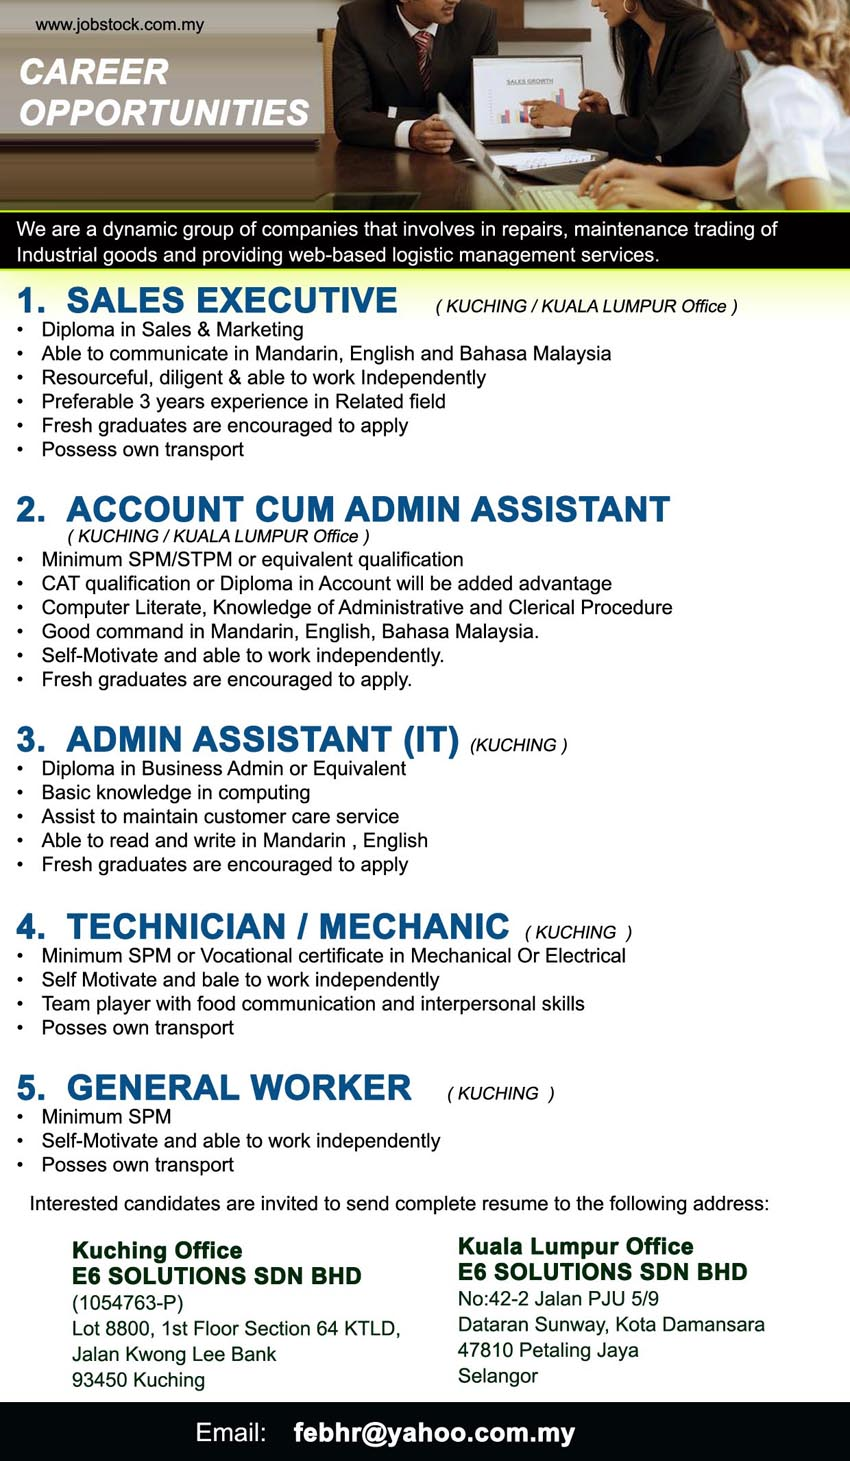 team player work independently resume sample resume for aircraft